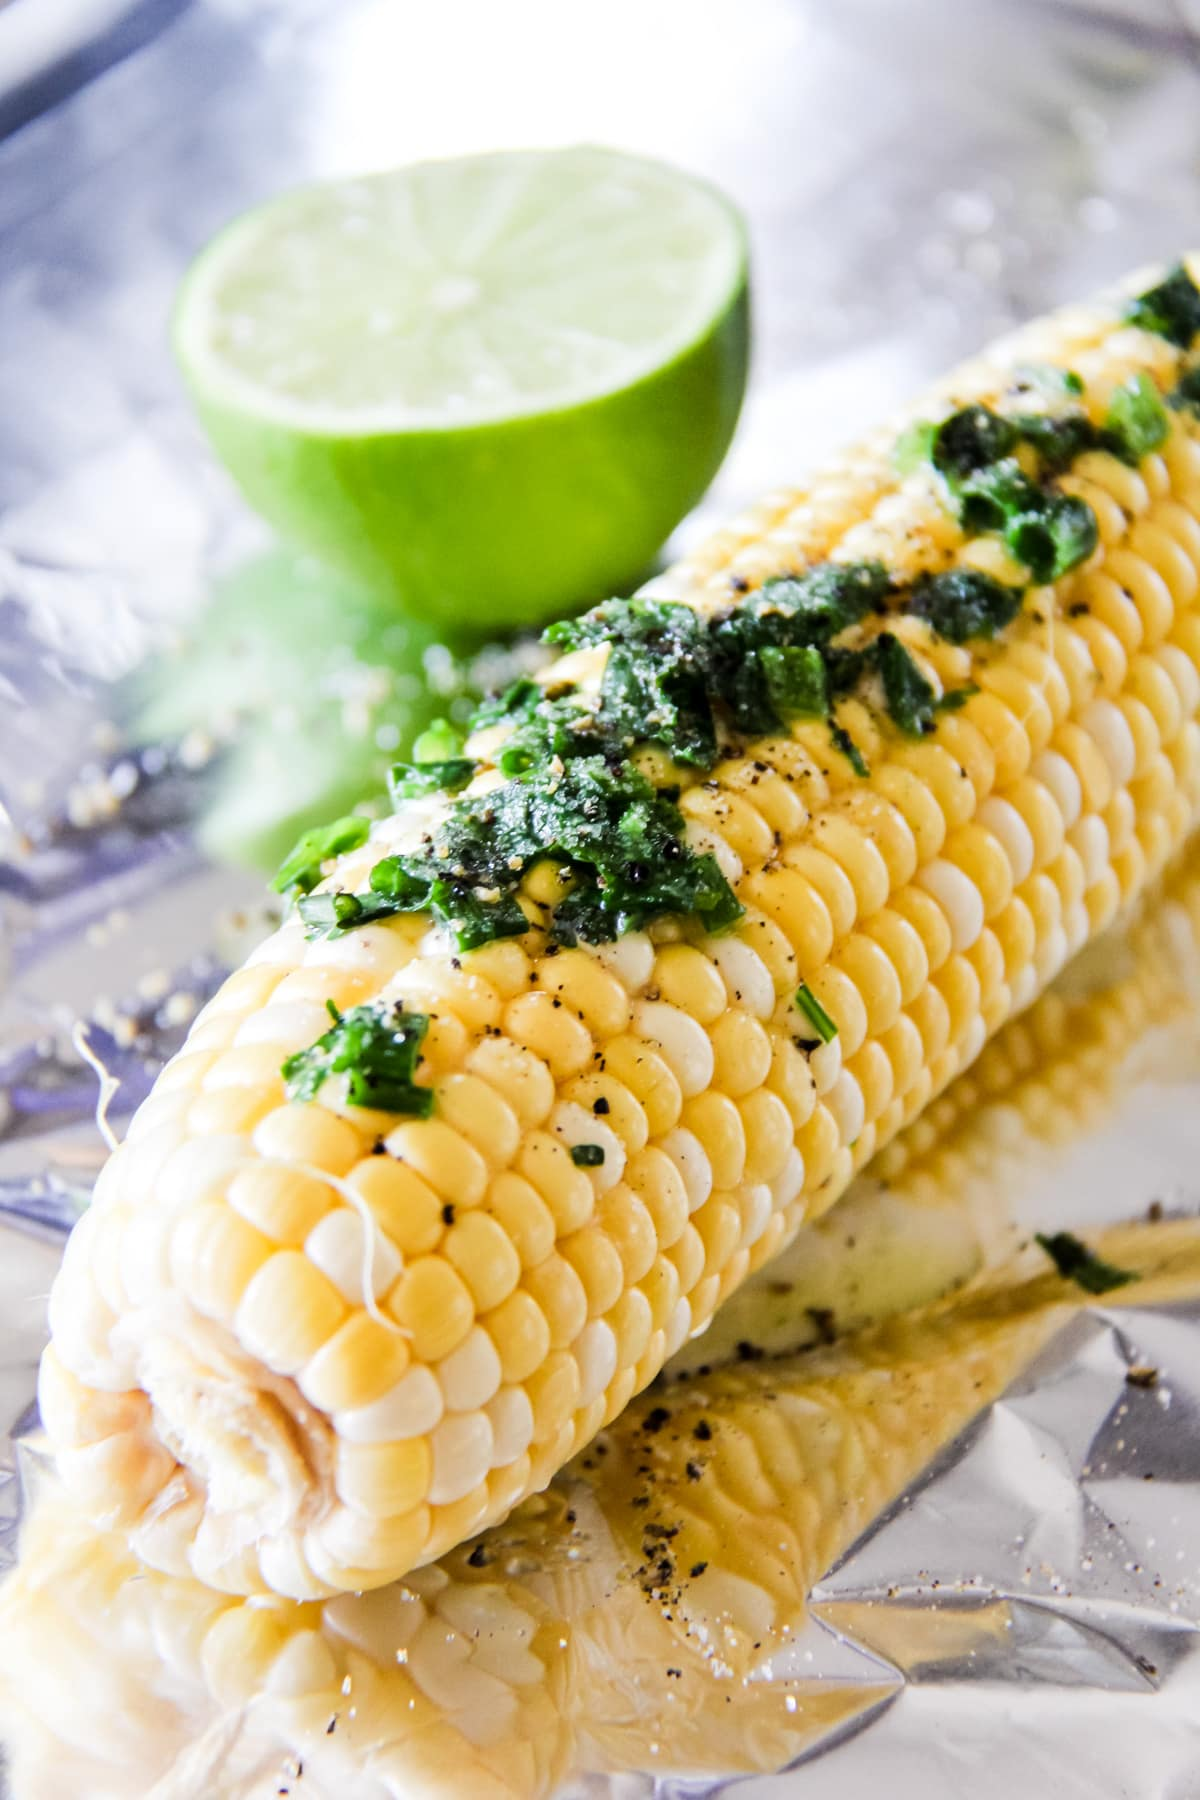 Grilled Corn on the Cob with Cilantro Butter and Lime